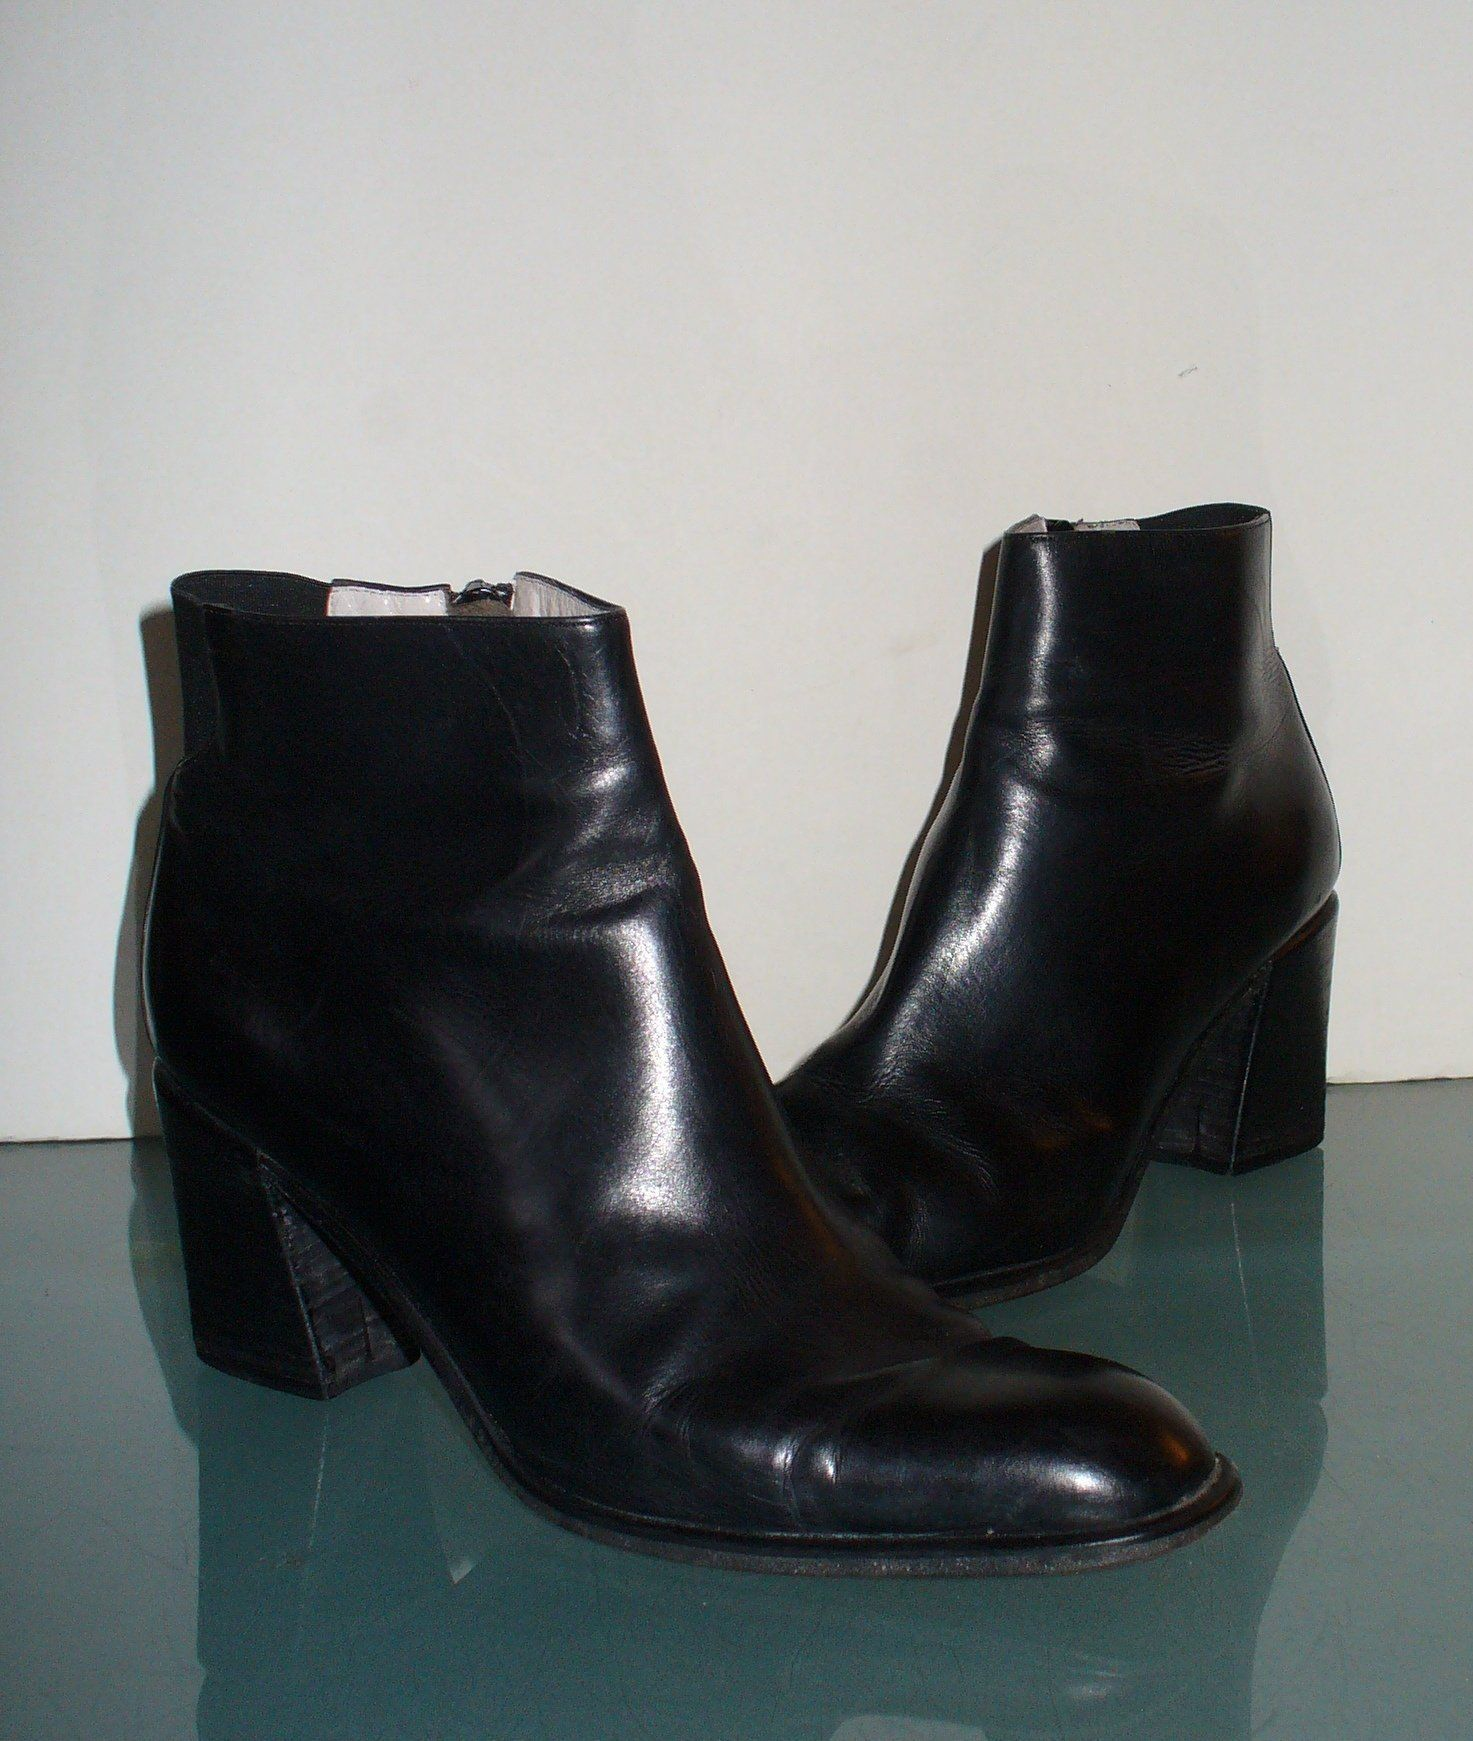 acbf51801e Via Spiga Made in Italy Leather Short Booties Size 8 US by EurotrashItaly  on Etsy